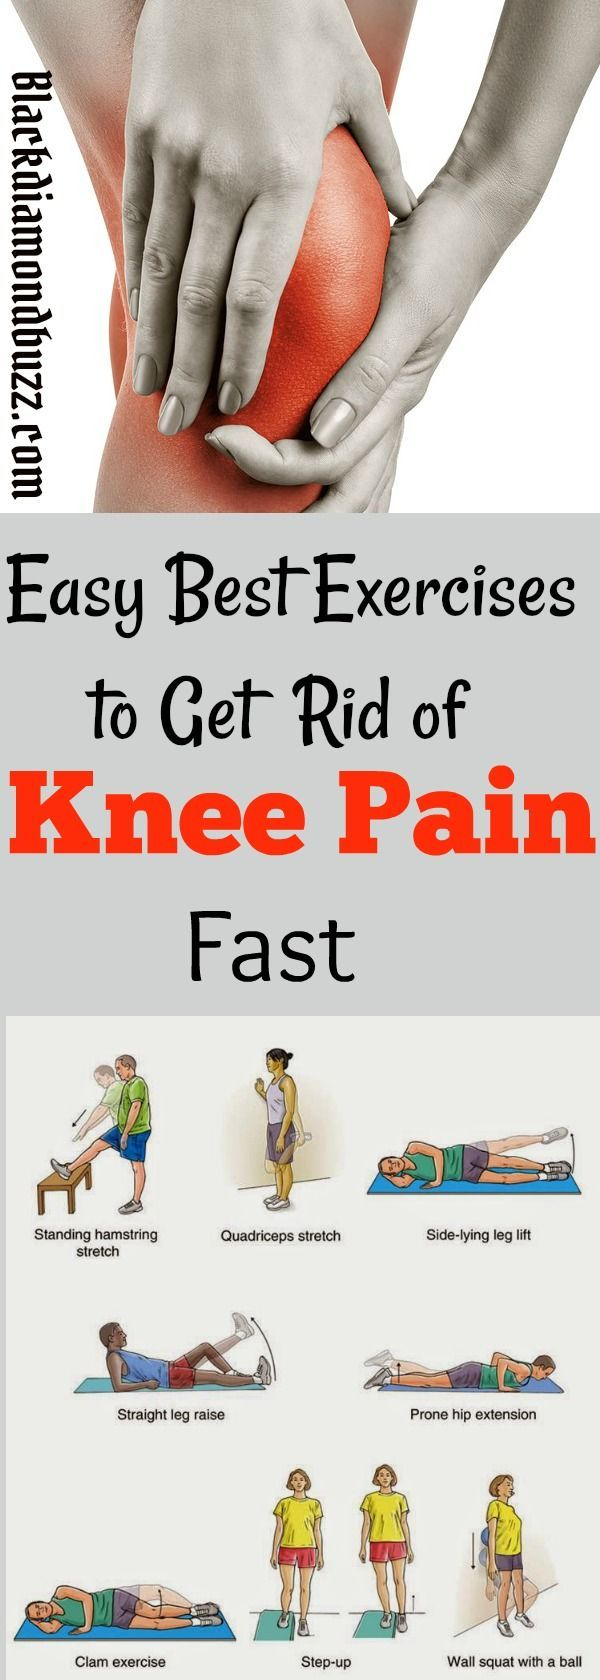 Easy Best Exercises to Get Rid of Knee Pain Fast.These workouts are proven to strengthen your knees and you will get total relief from arthritis, patellar tendonitis, chondromalacia patellae and lower back pain.    Share if you like it !